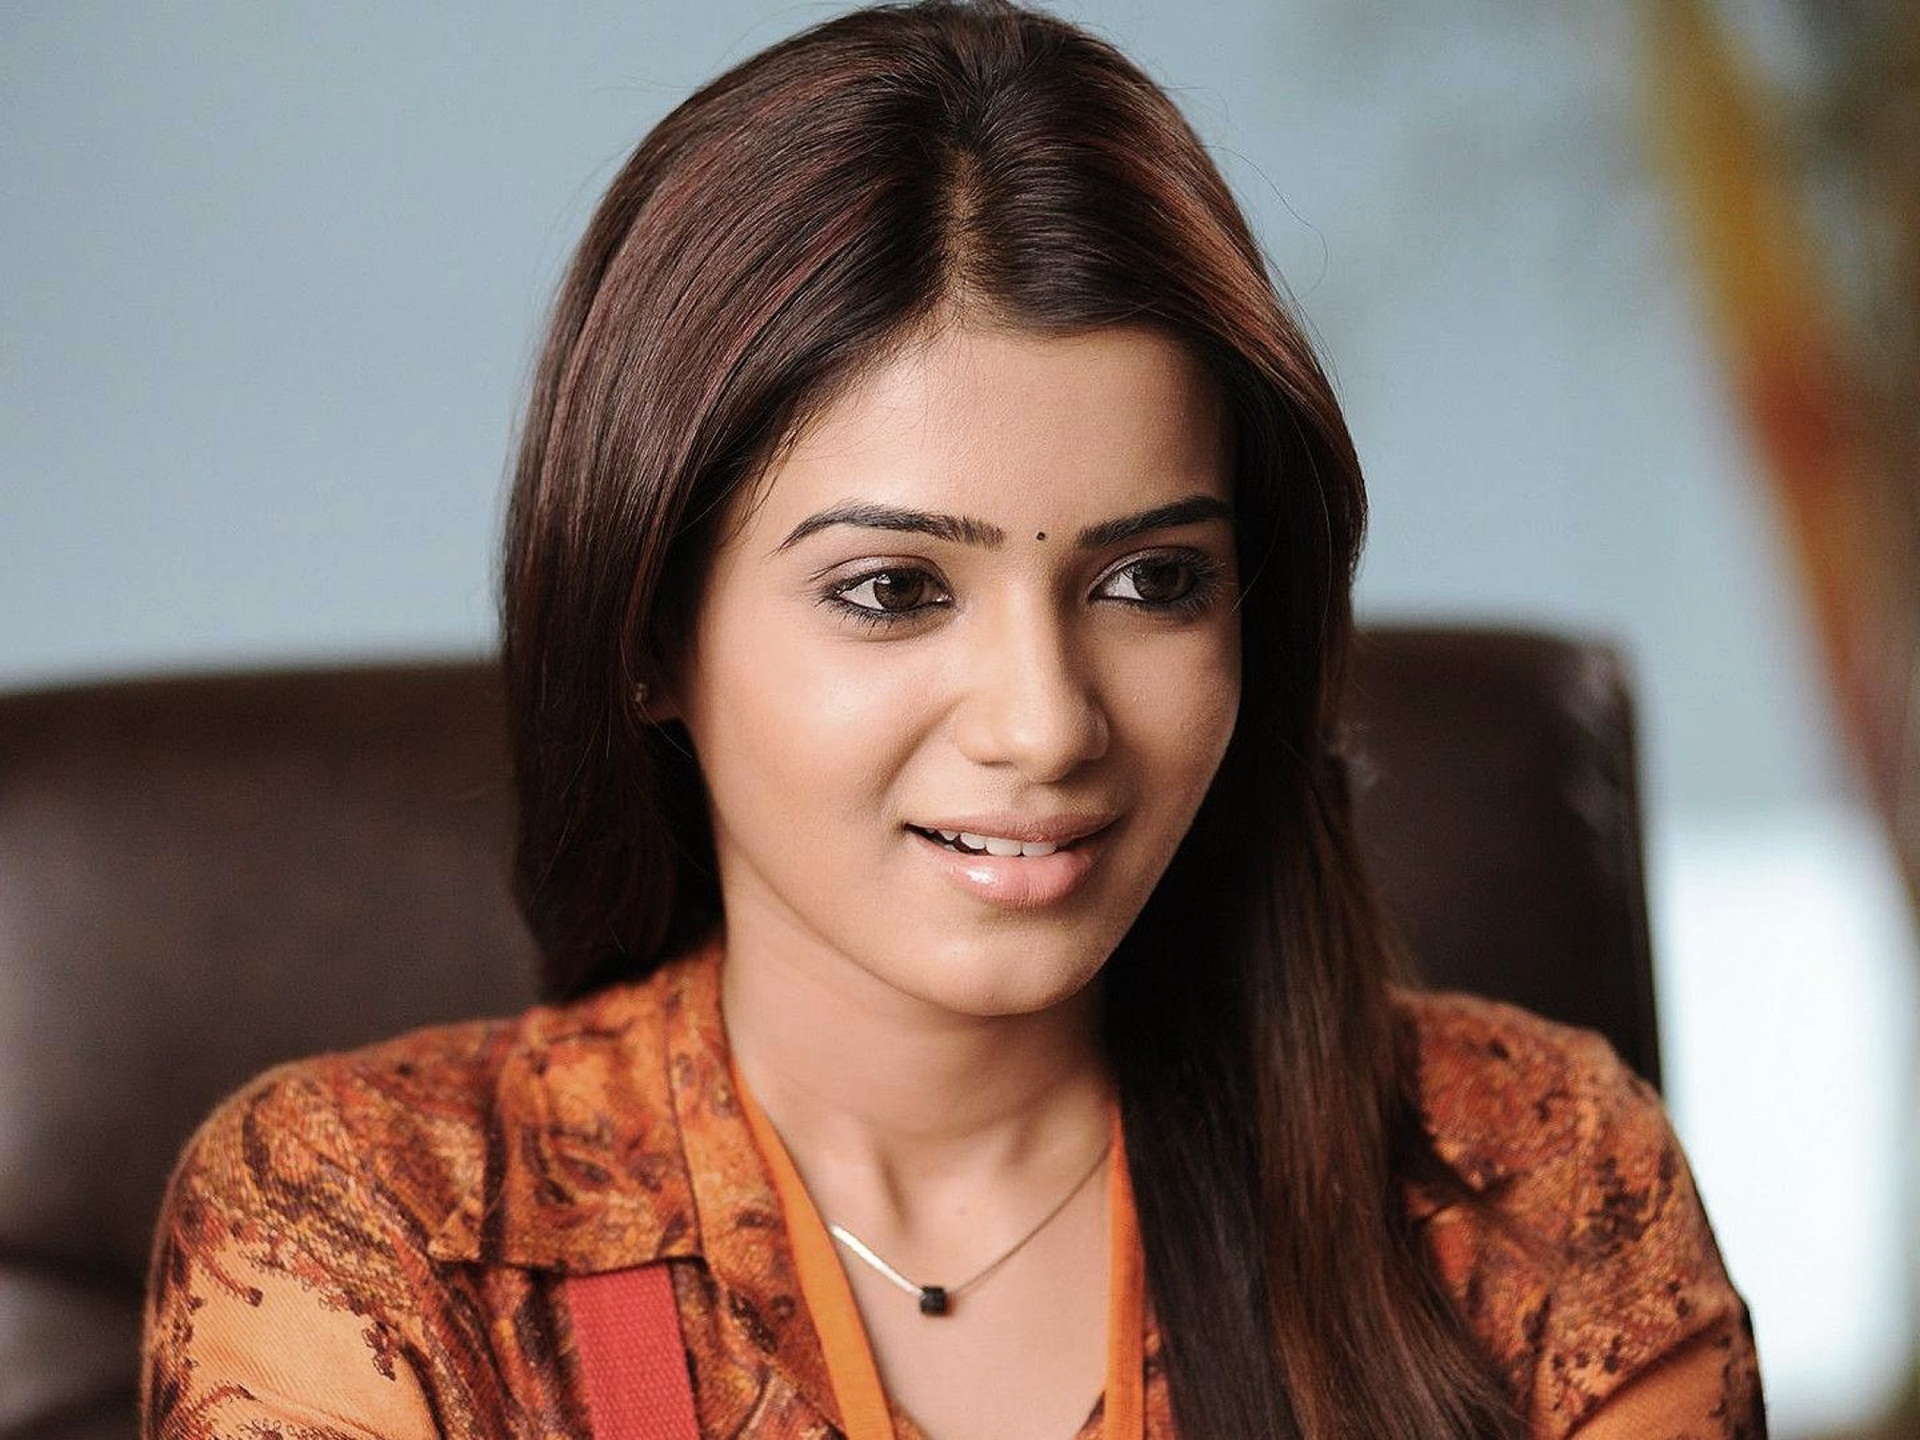 samantha ruth prabhu actress wallpaper 54812